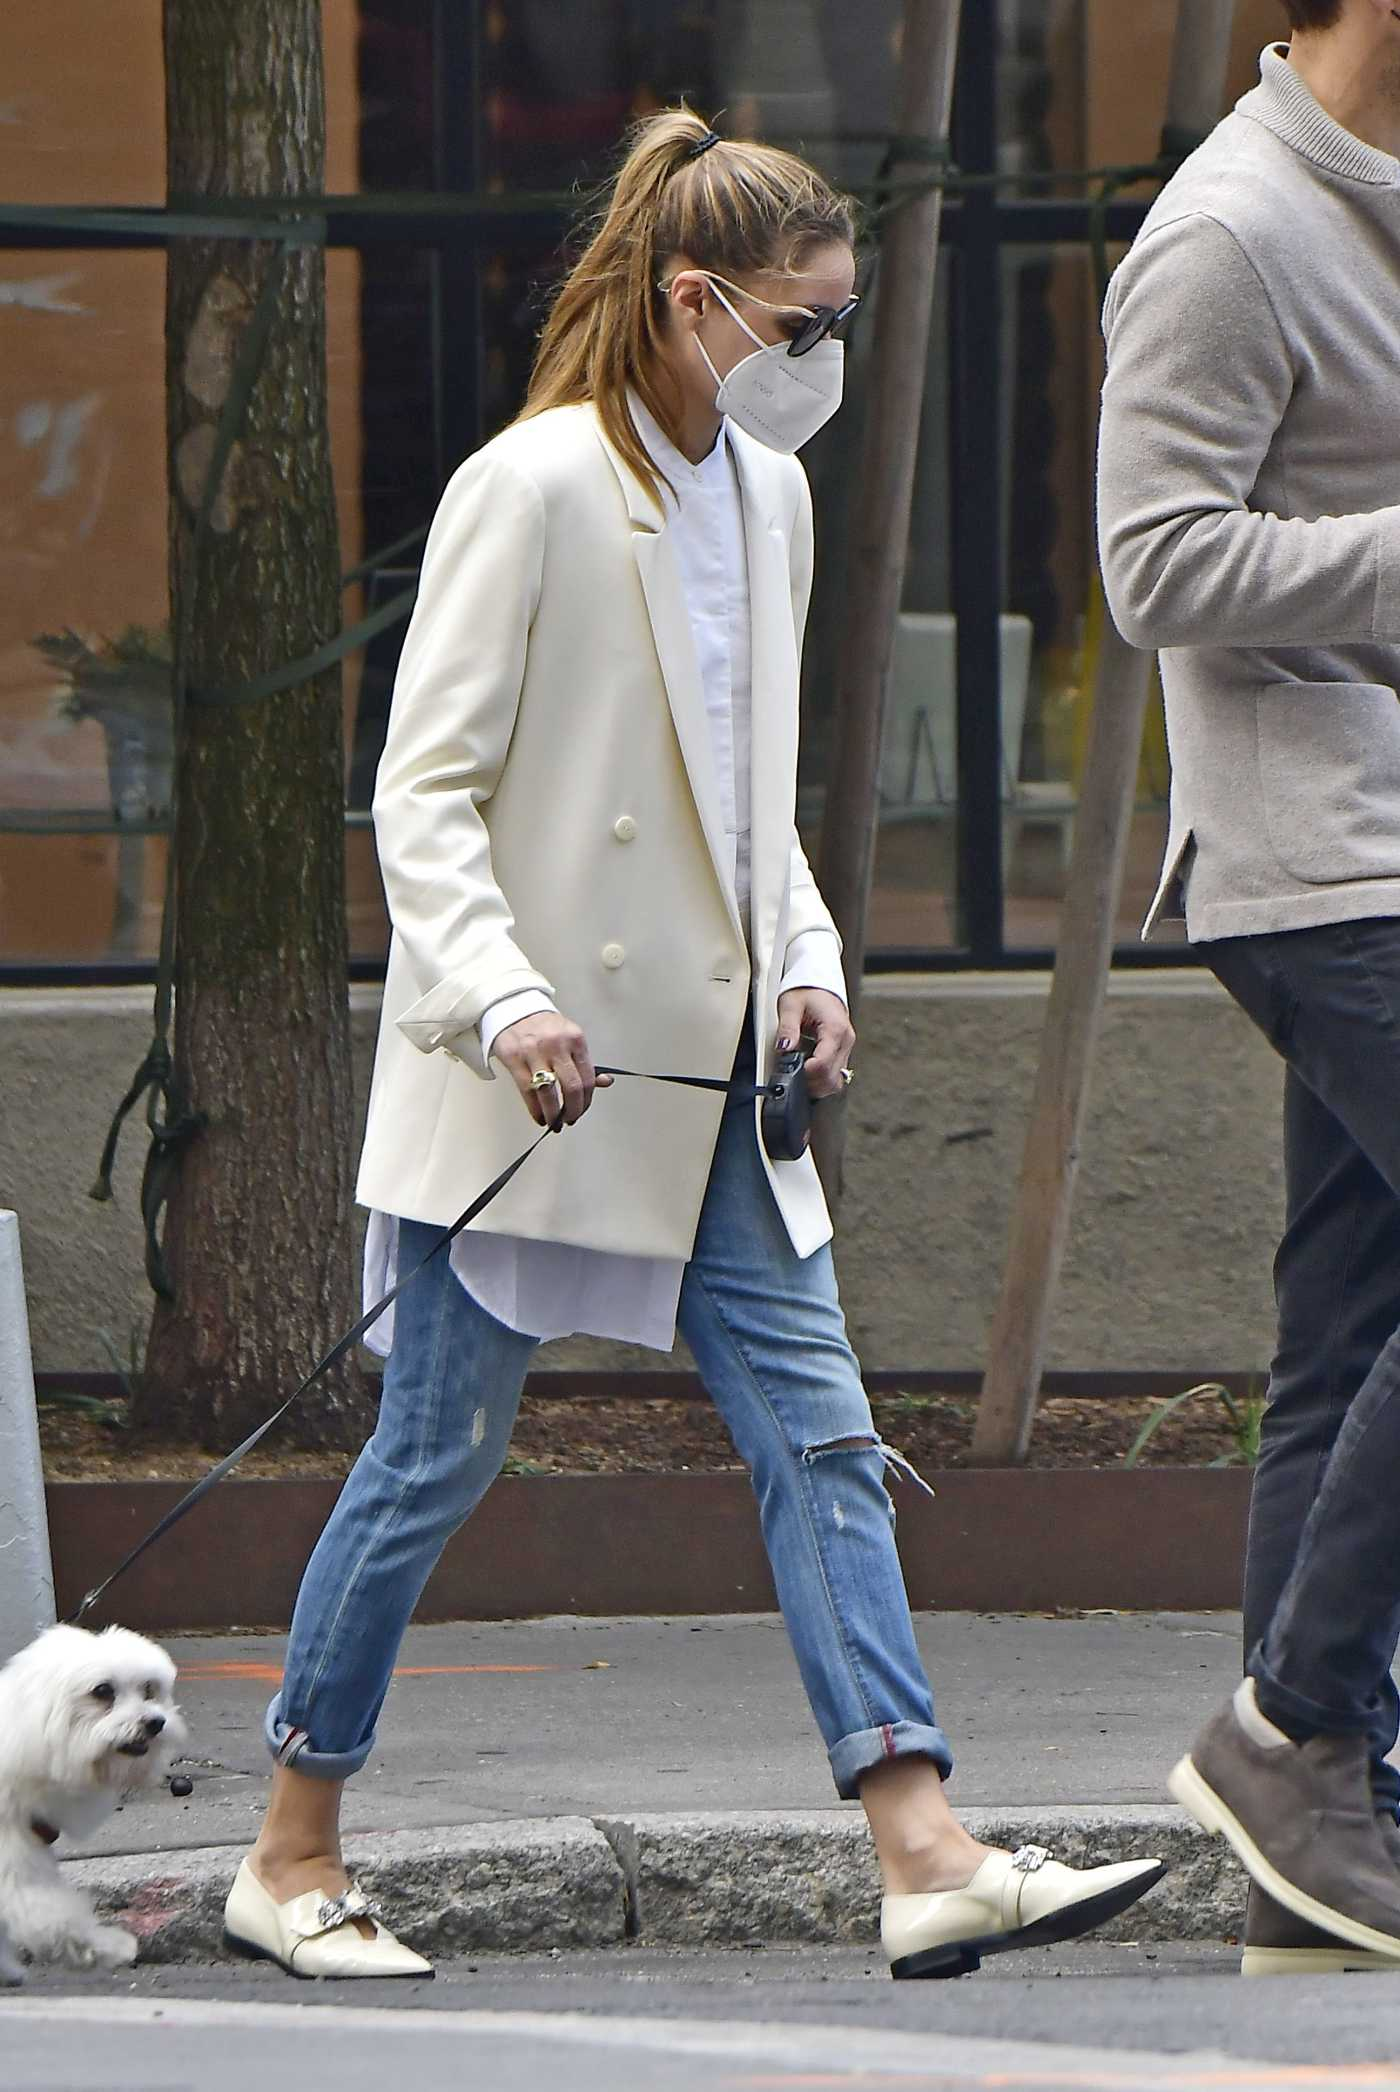 Olivia Palermo in a White Blazer Walks Her Dog with Husband Johannes Huebl in Brooklyn, New York 10/10/2020